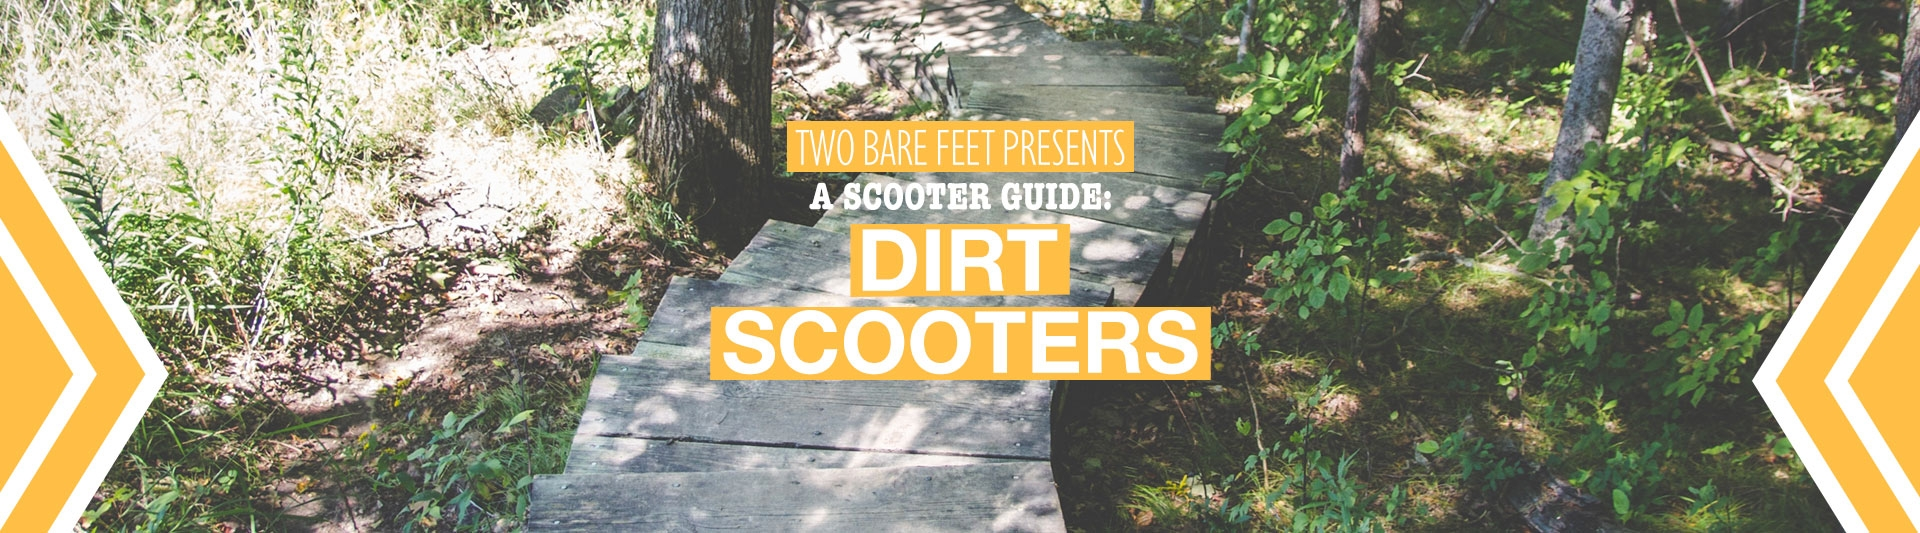 Dirt scooters banner